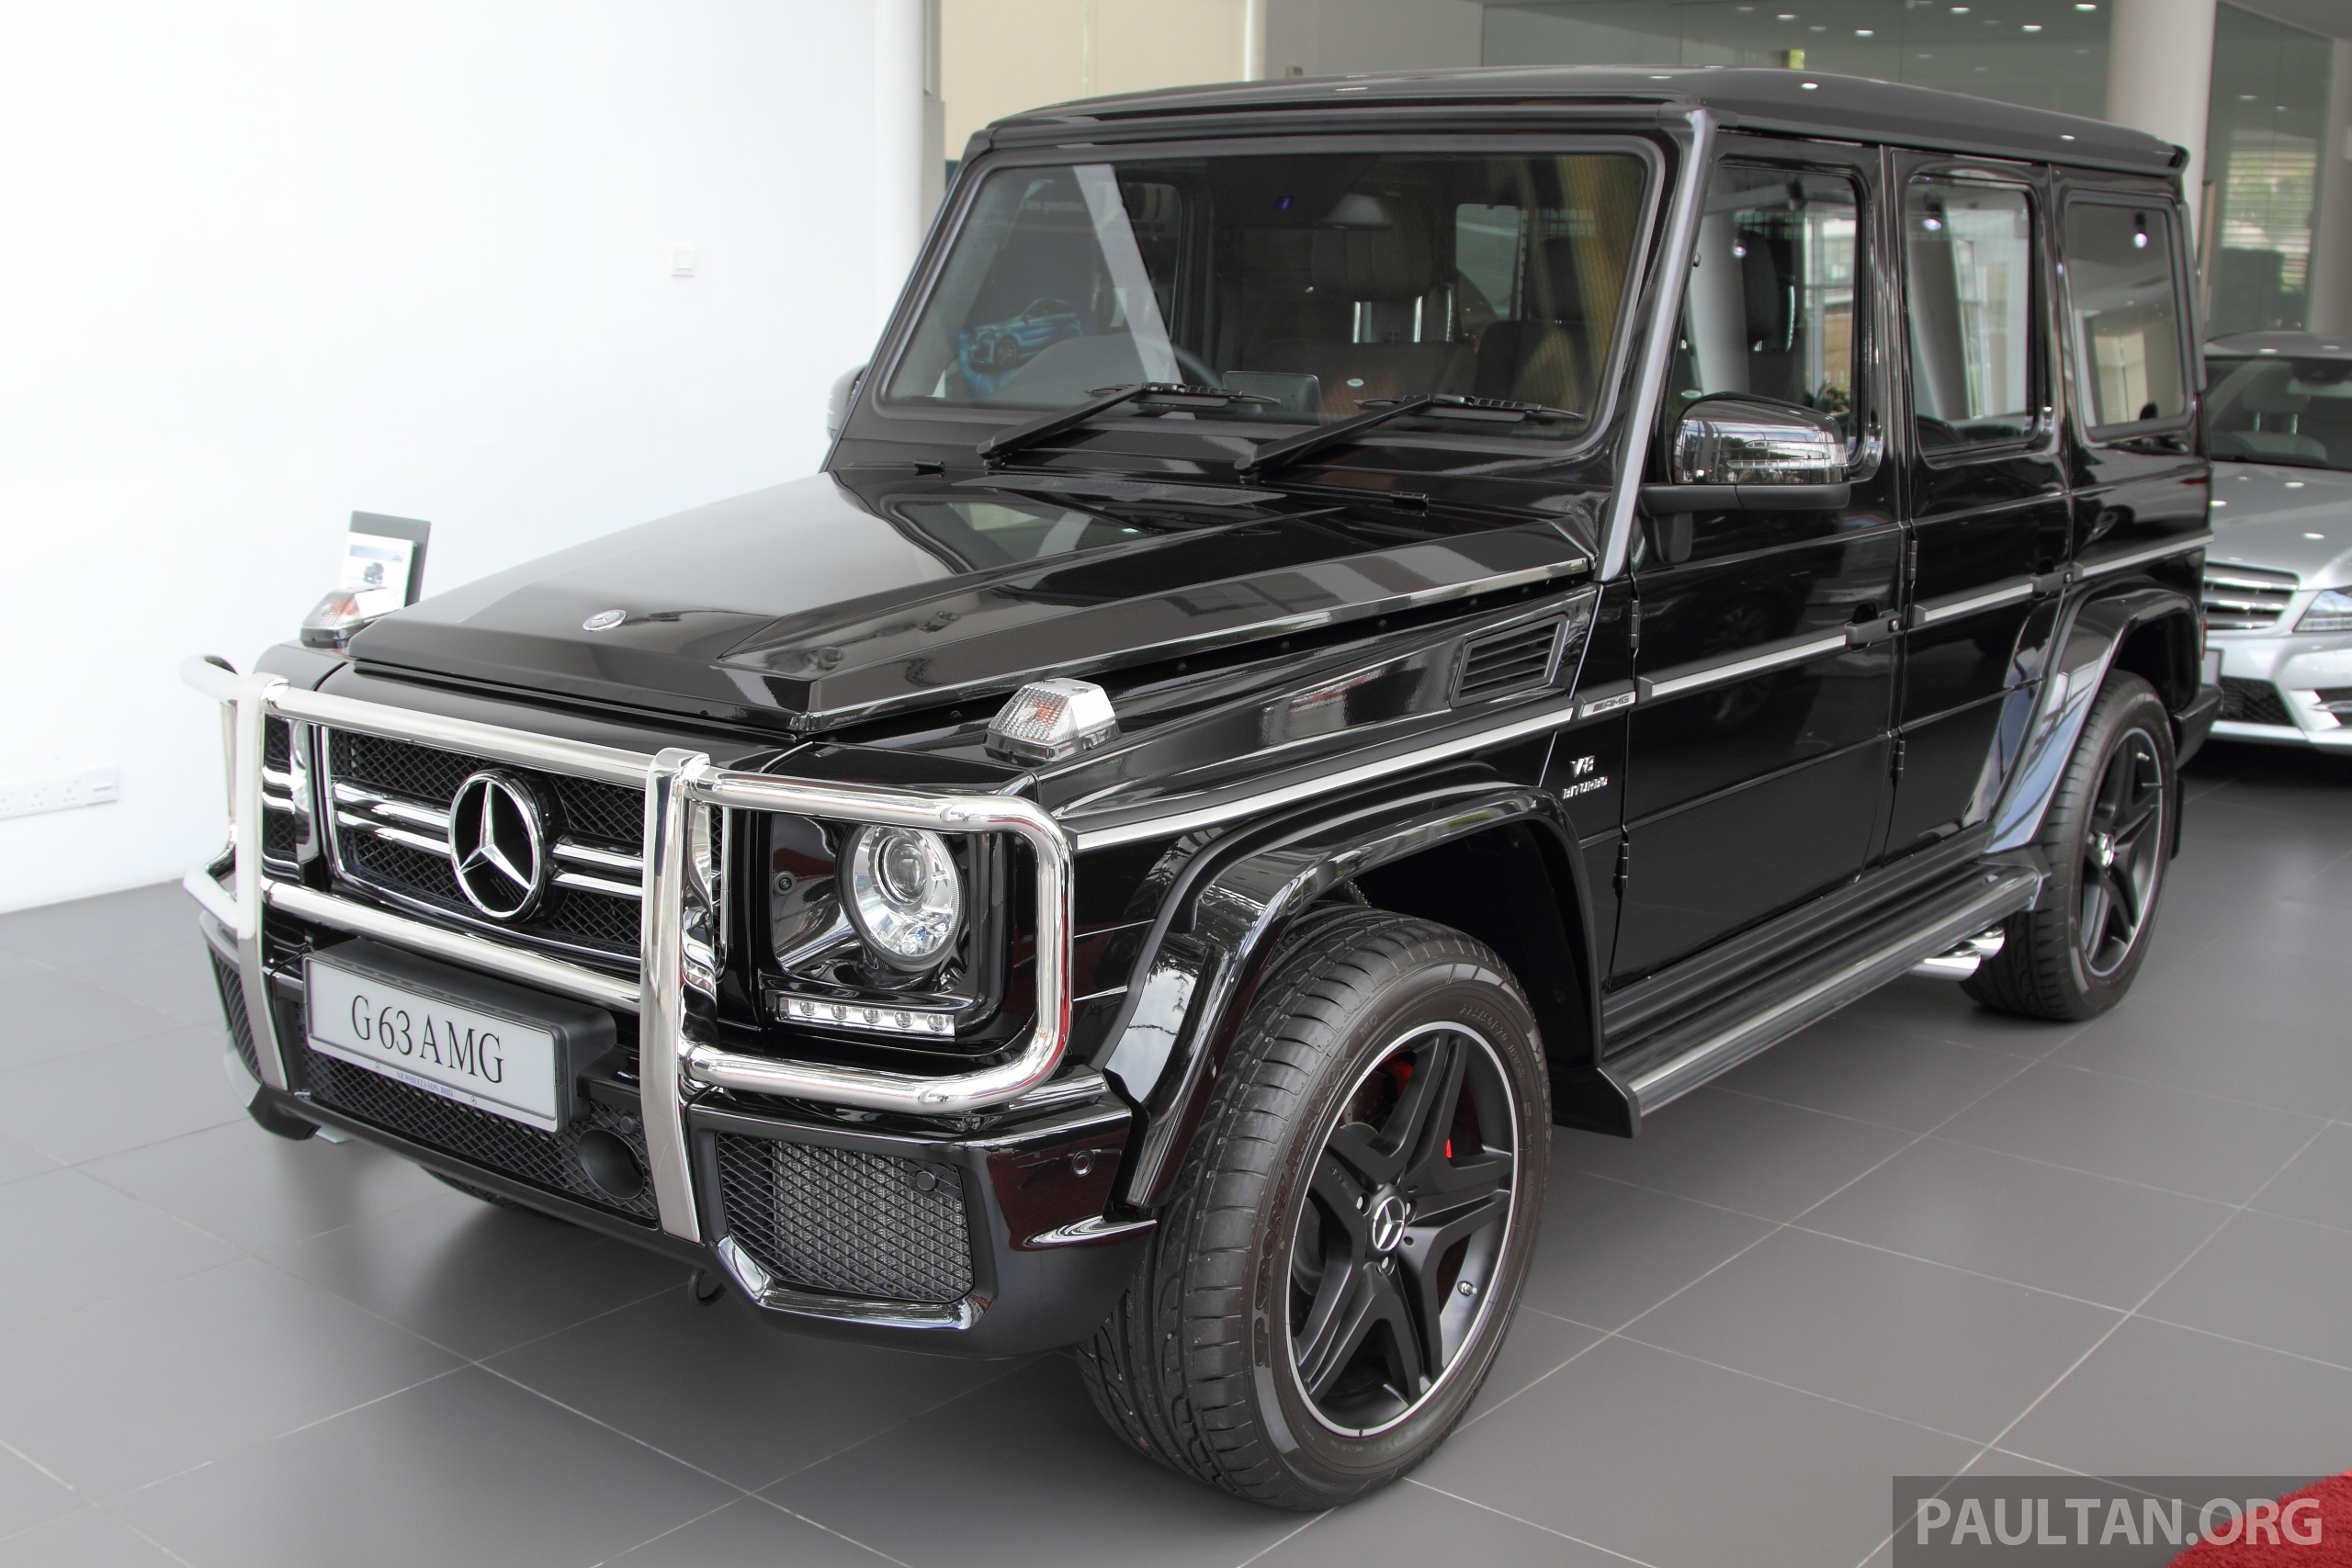 mercedes benz g 63 amg in malaysia rm1 1 million image 270613. Black Bedroom Furniture Sets. Home Design Ideas